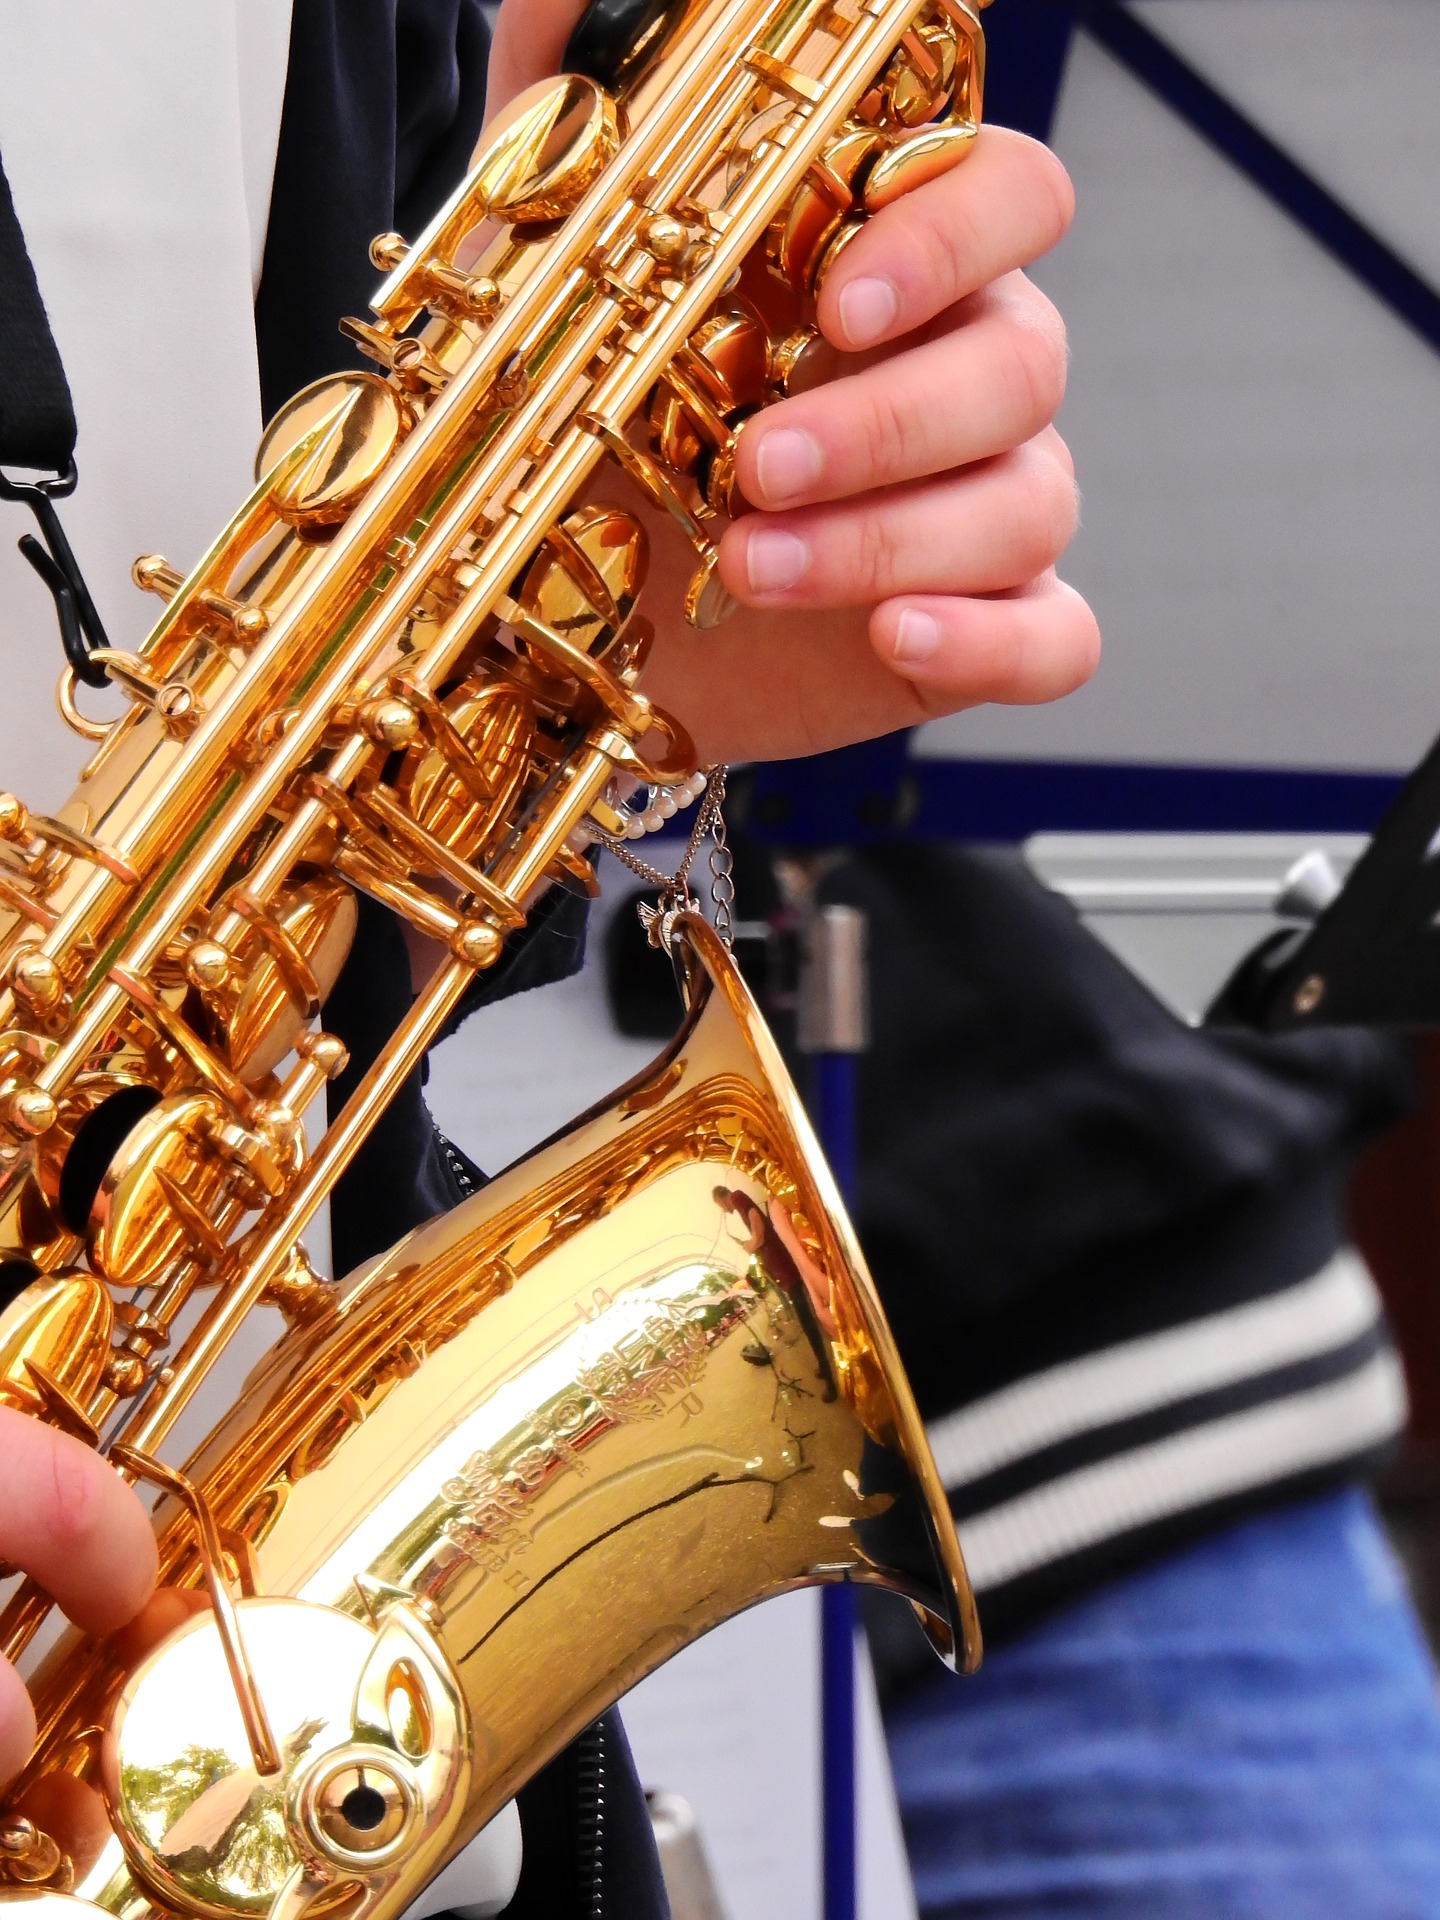 The saxophone has been also constructed with other material than brass